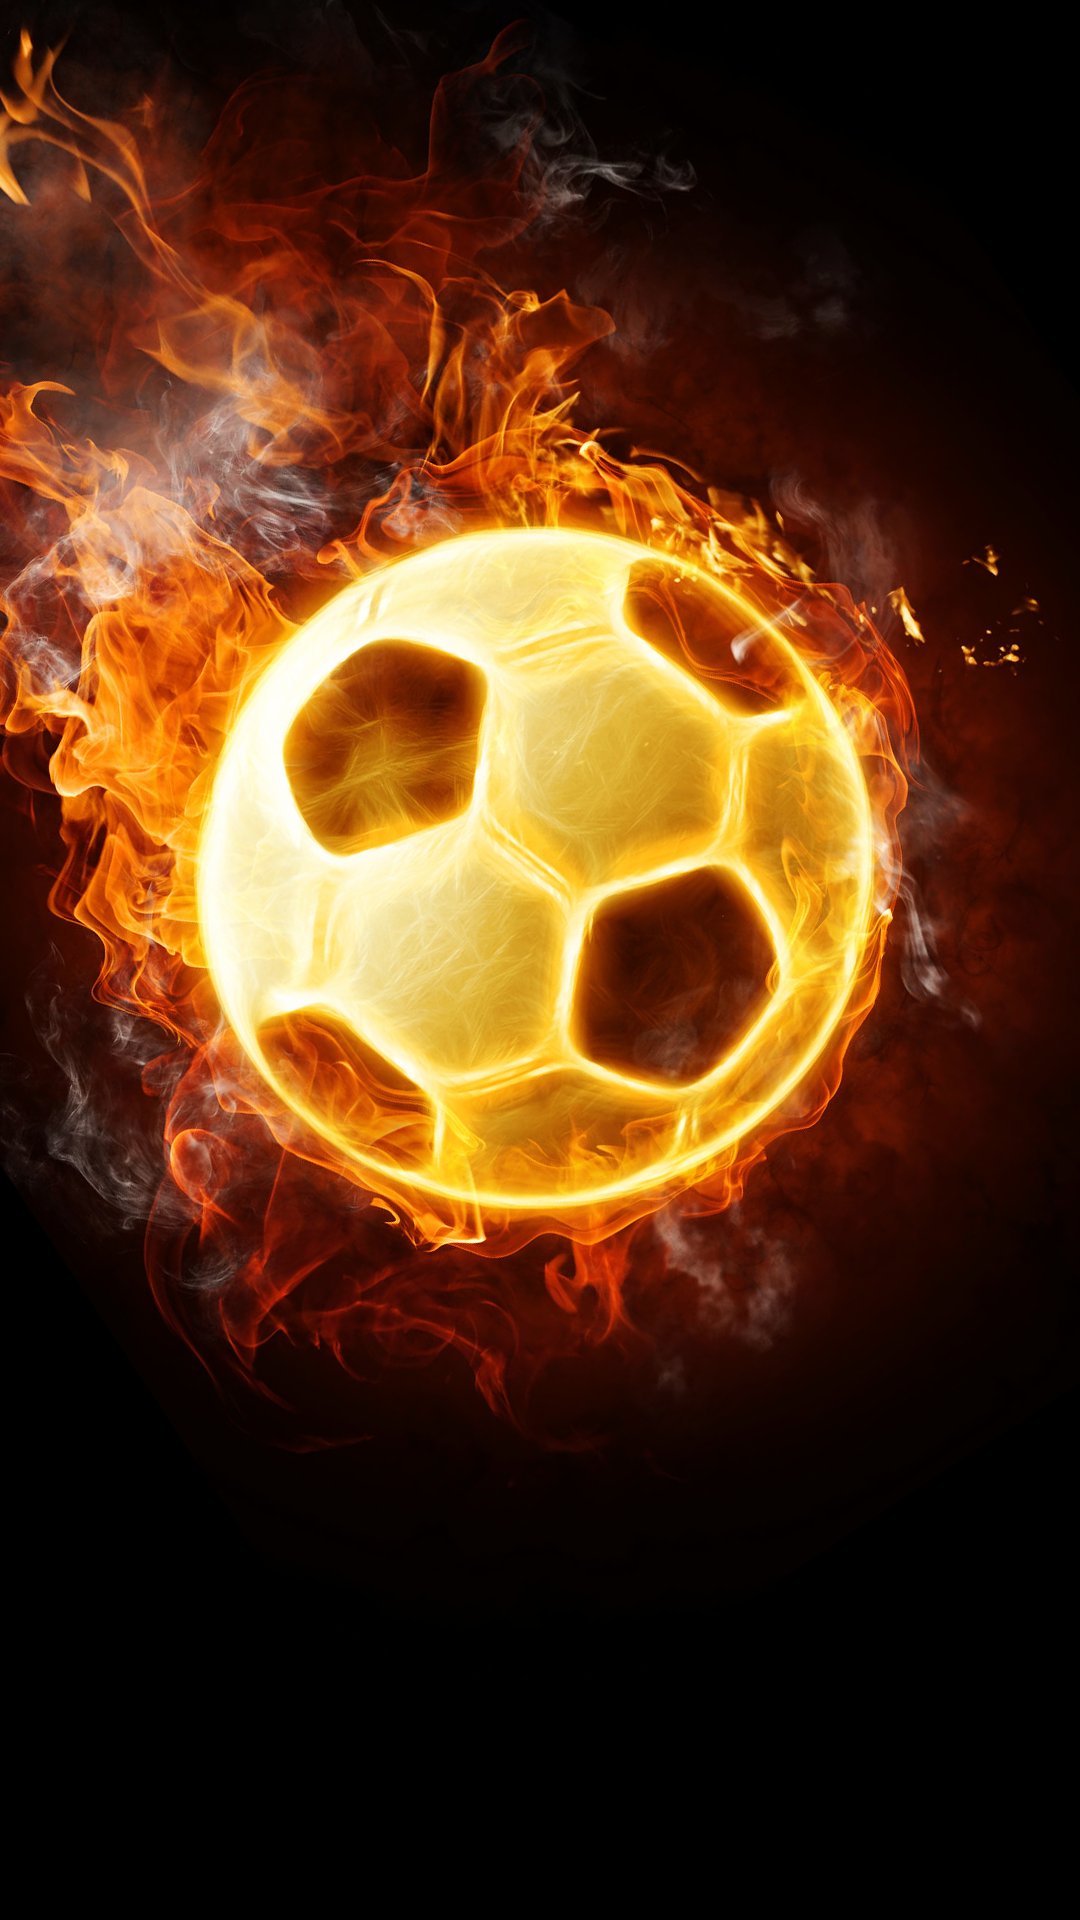 Football Wallpaper Hd For Mobile   1080x1920   Download HD 1080x1920